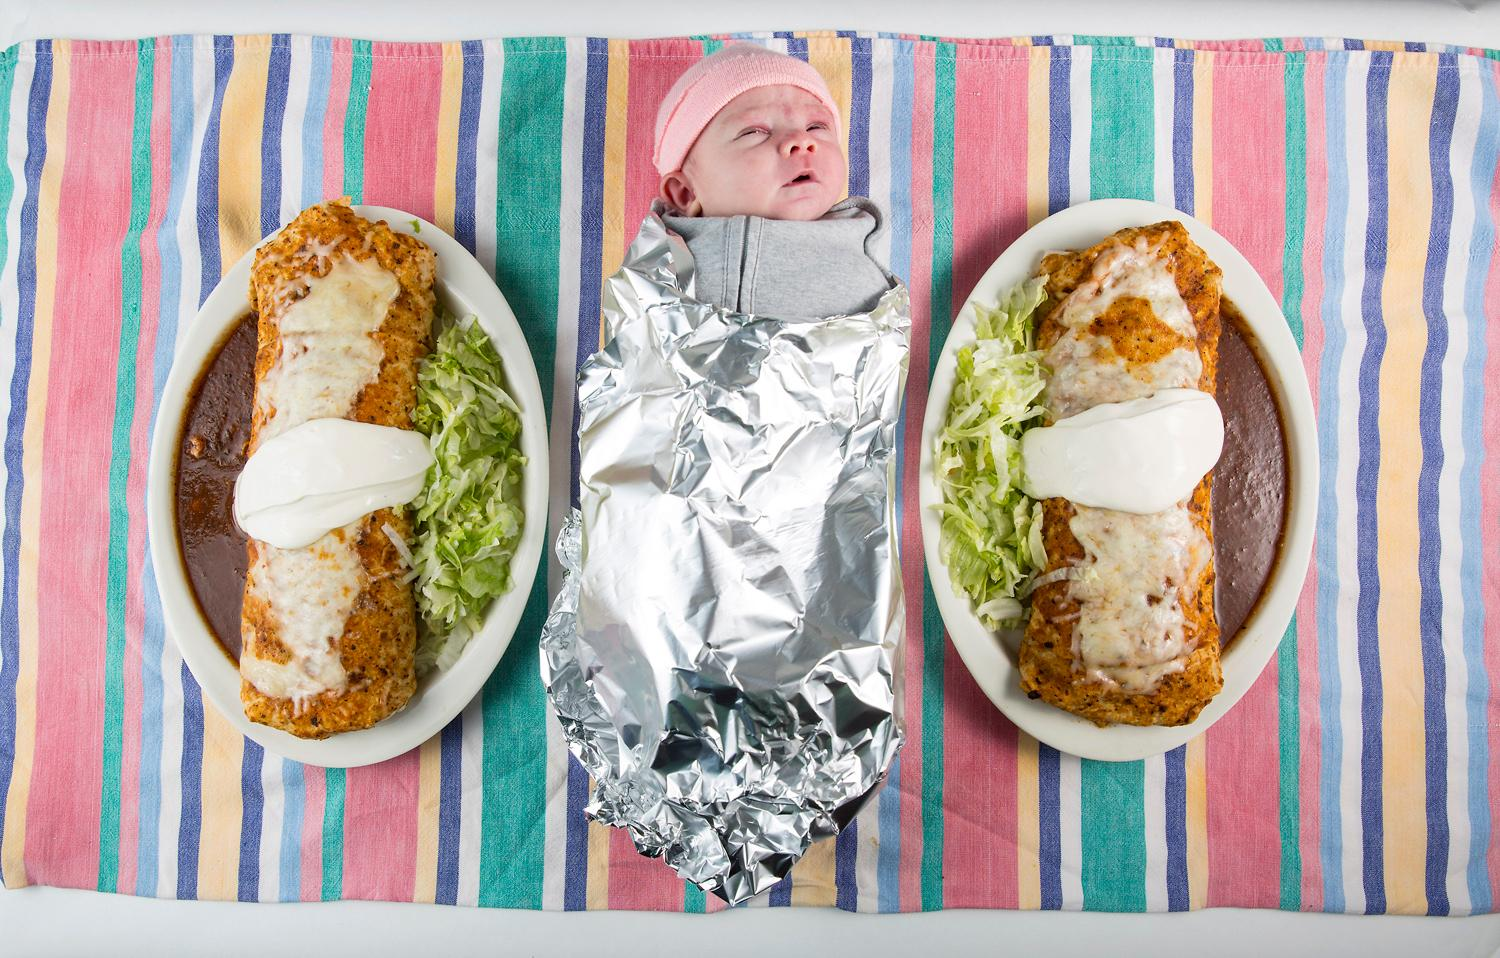 Gorditos Mexican Food boasts something called a Baby Burrito on their menu, claiming it's the size of a newborn infant. So we made a call, and brought a couple little ones (with their parents permission, of course) over to the restaurant for a little test - and photoshoot! The verdict? Little one-week-old Mollie was awfully darn close, while three-month-old Matilda was at least twice the size! Big thanks to both babies and their families for helping us with this fun shoot. Gorditos is located in Greenwood at 213 N. 85th St. (Image: Sy Bean / Seattle Refined)